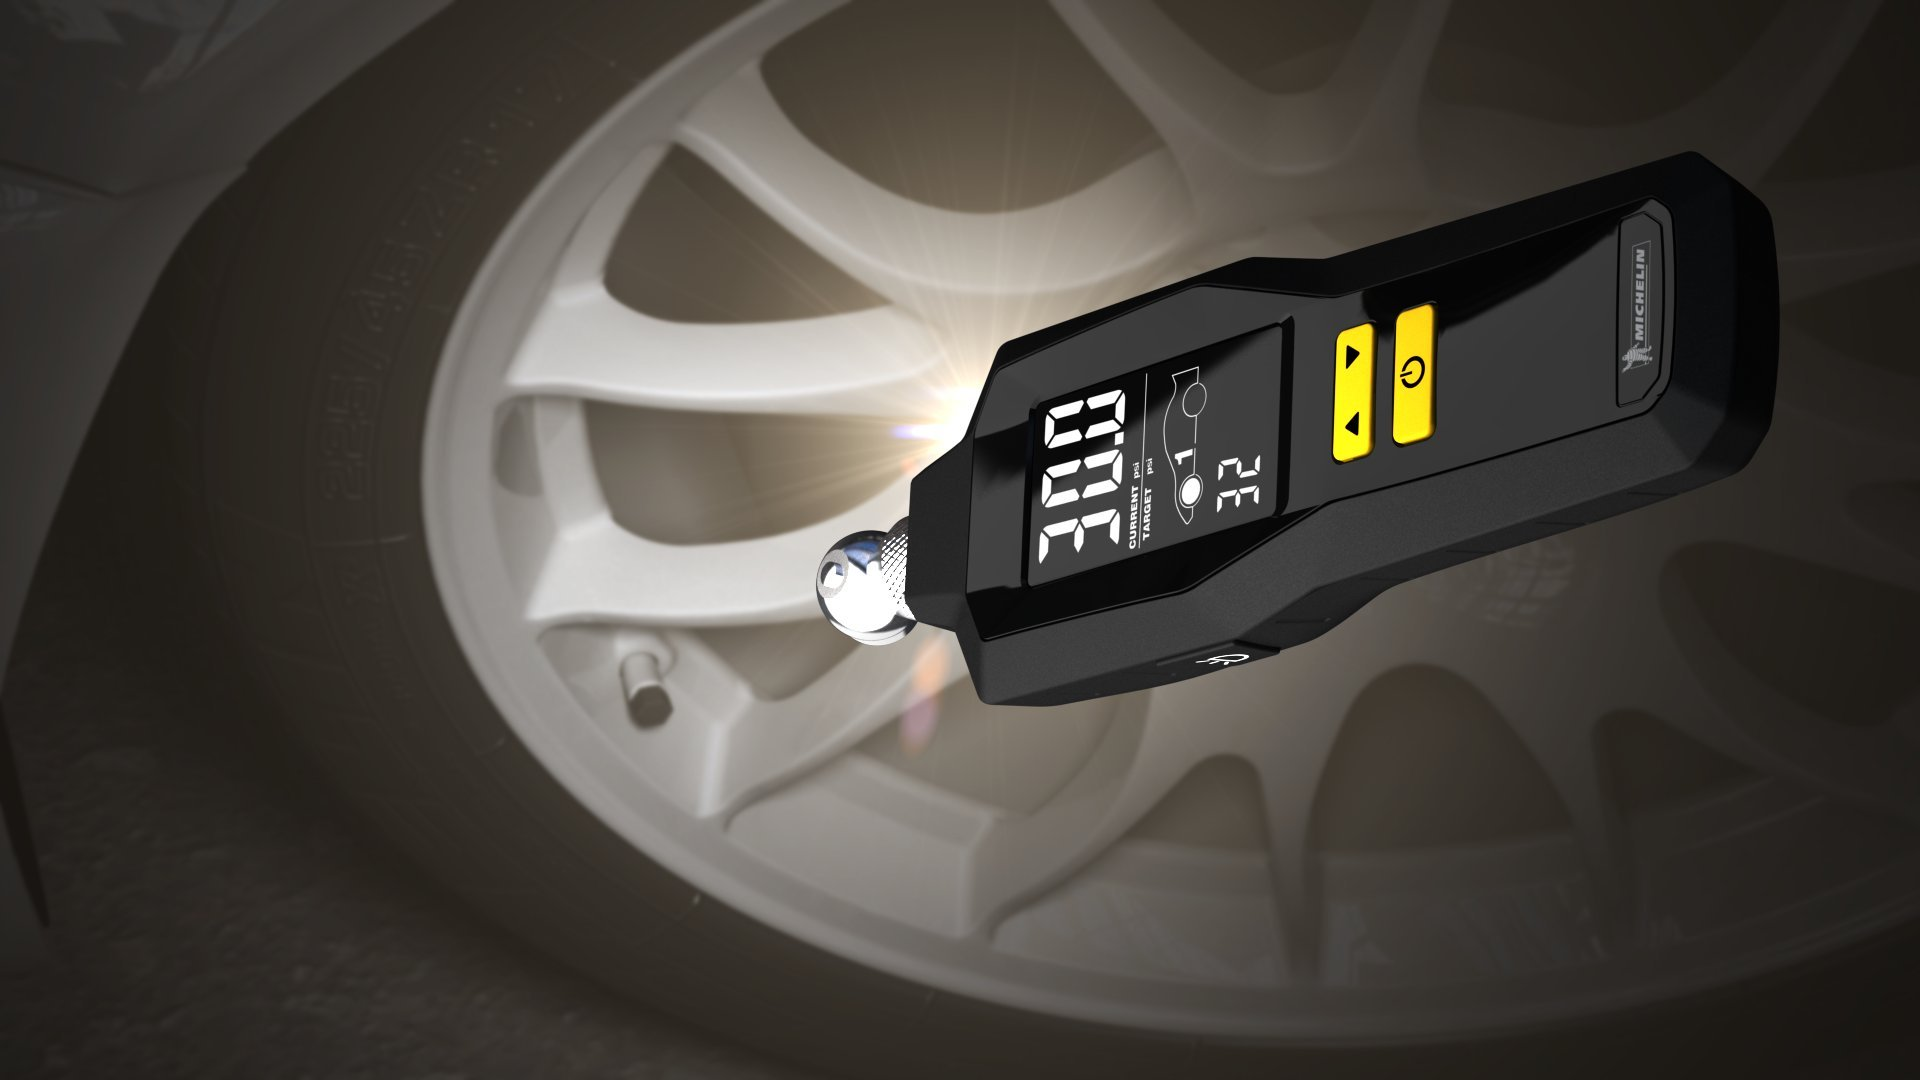 MICHELIN 12295 Programmable Dual Car Digital Tire Pressure Gauge (with Flashlight and Bleed Valve) by MICHELIN (Image #5)